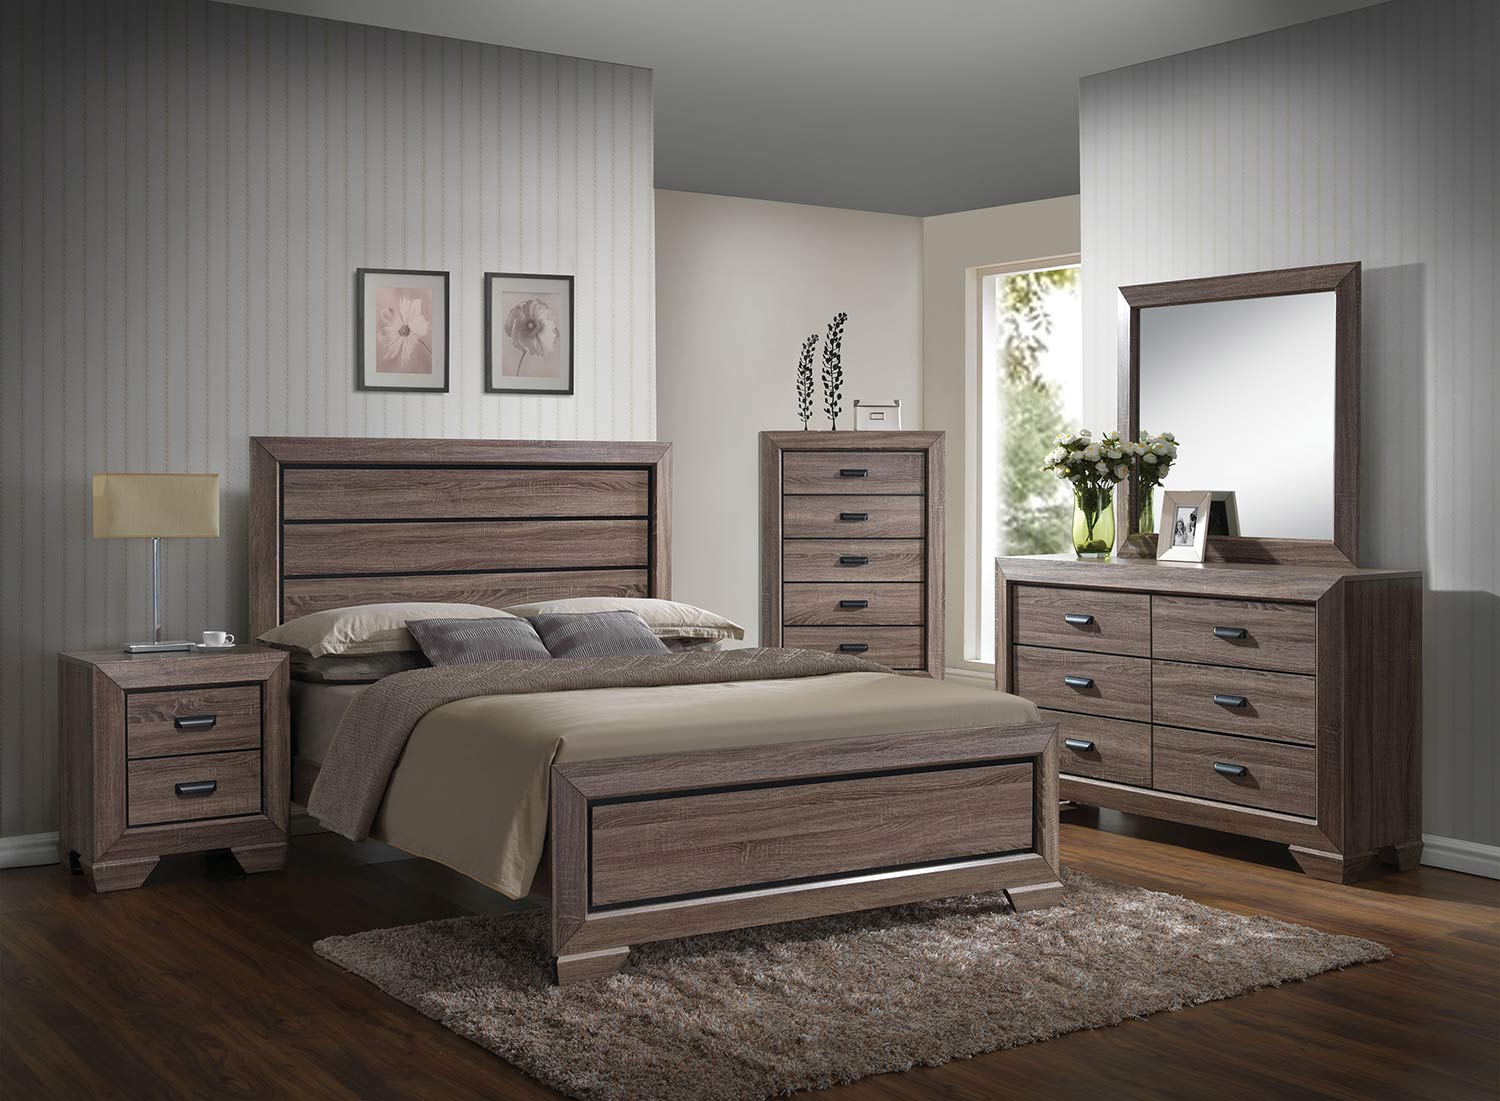 Acme Lyndon Bedroom Set - Weathered Gray Grain